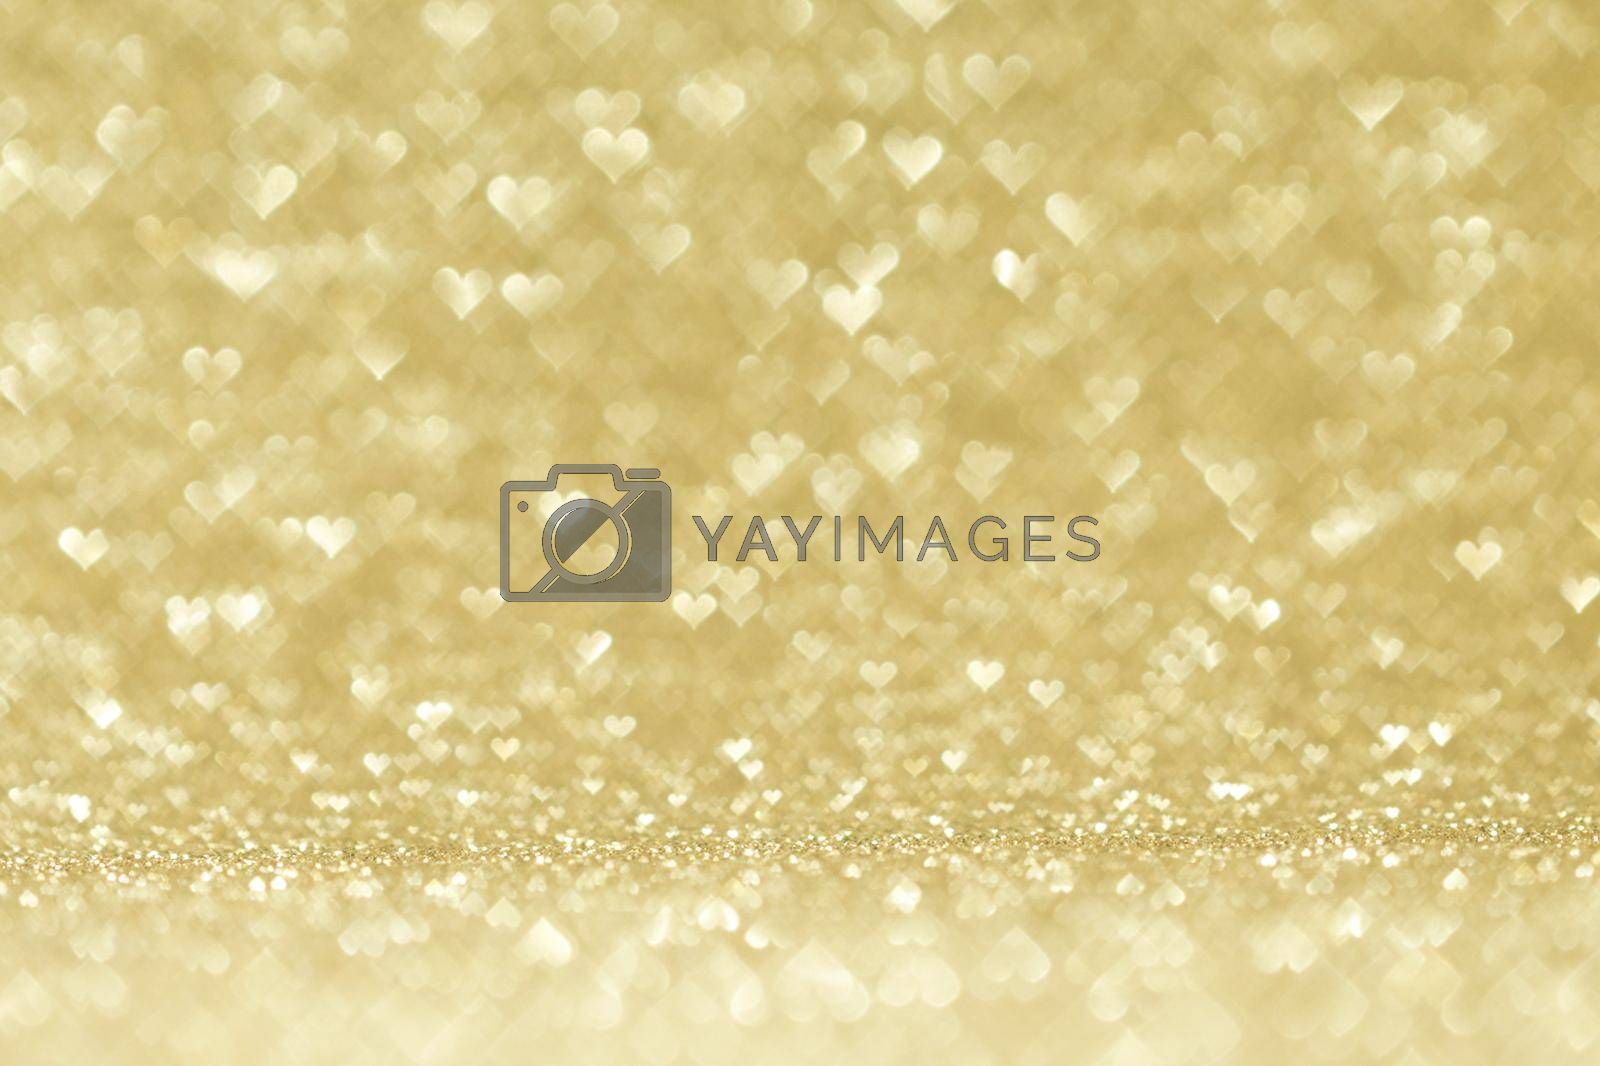 Valentines day abstract background with golden heart shape bokeh lights